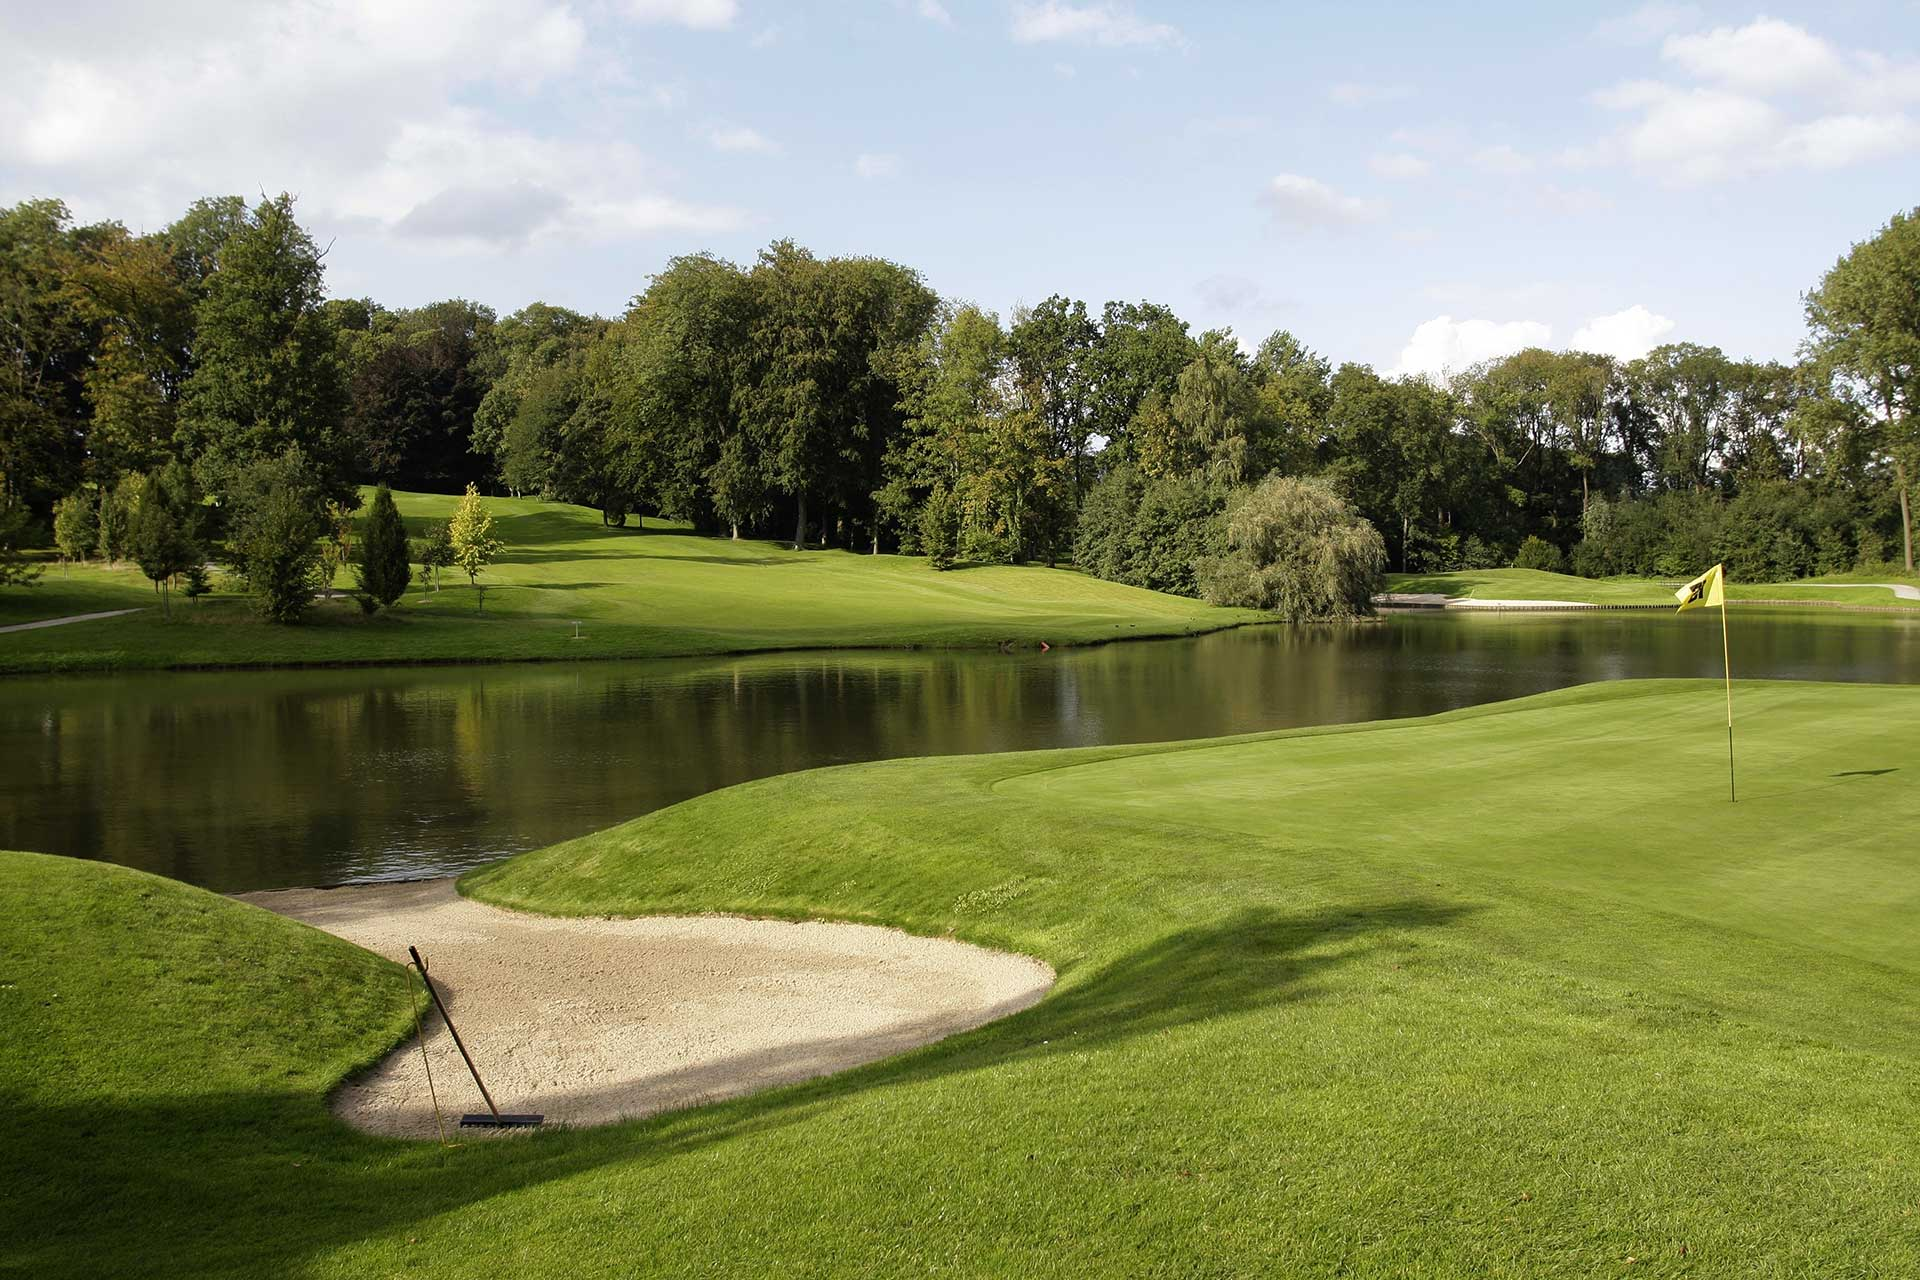 Golf-Expedition-Golfreizen-België-brussel-Martins-Grand-Hotel-Waterloo-Golfbaan